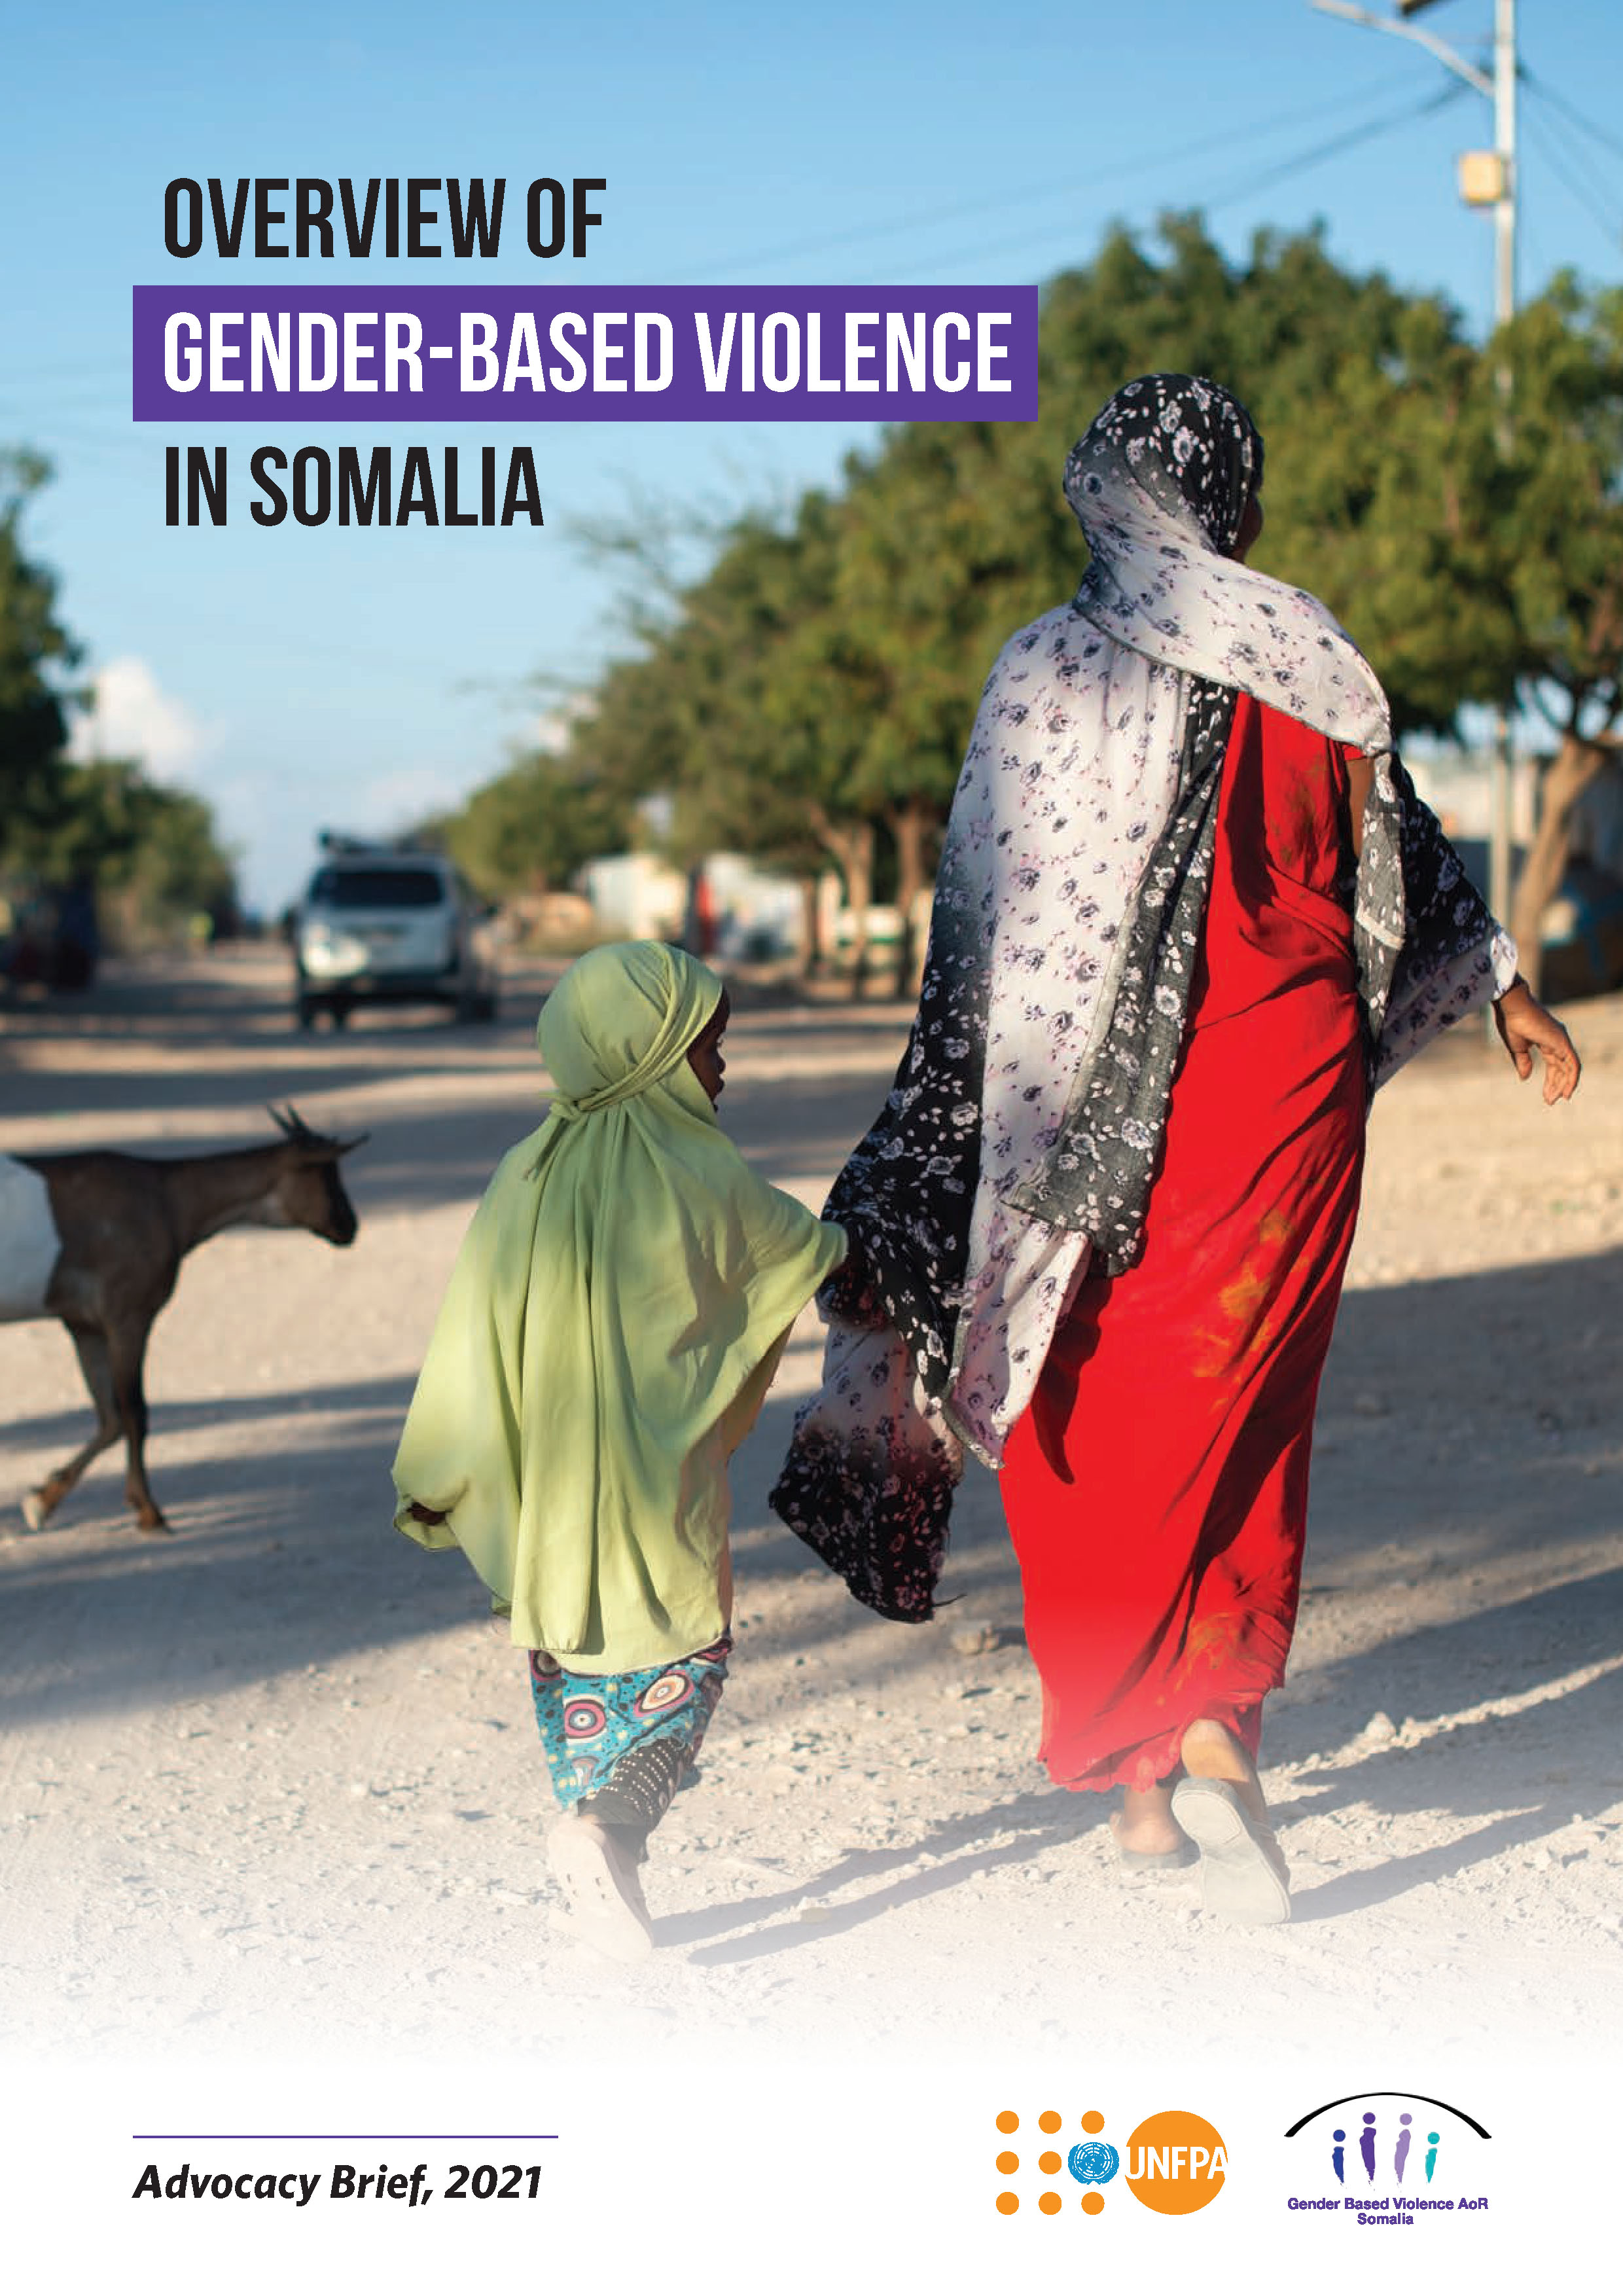 Overview of Gender-Based Violence in Somalia - Advocacy Brief, 2021